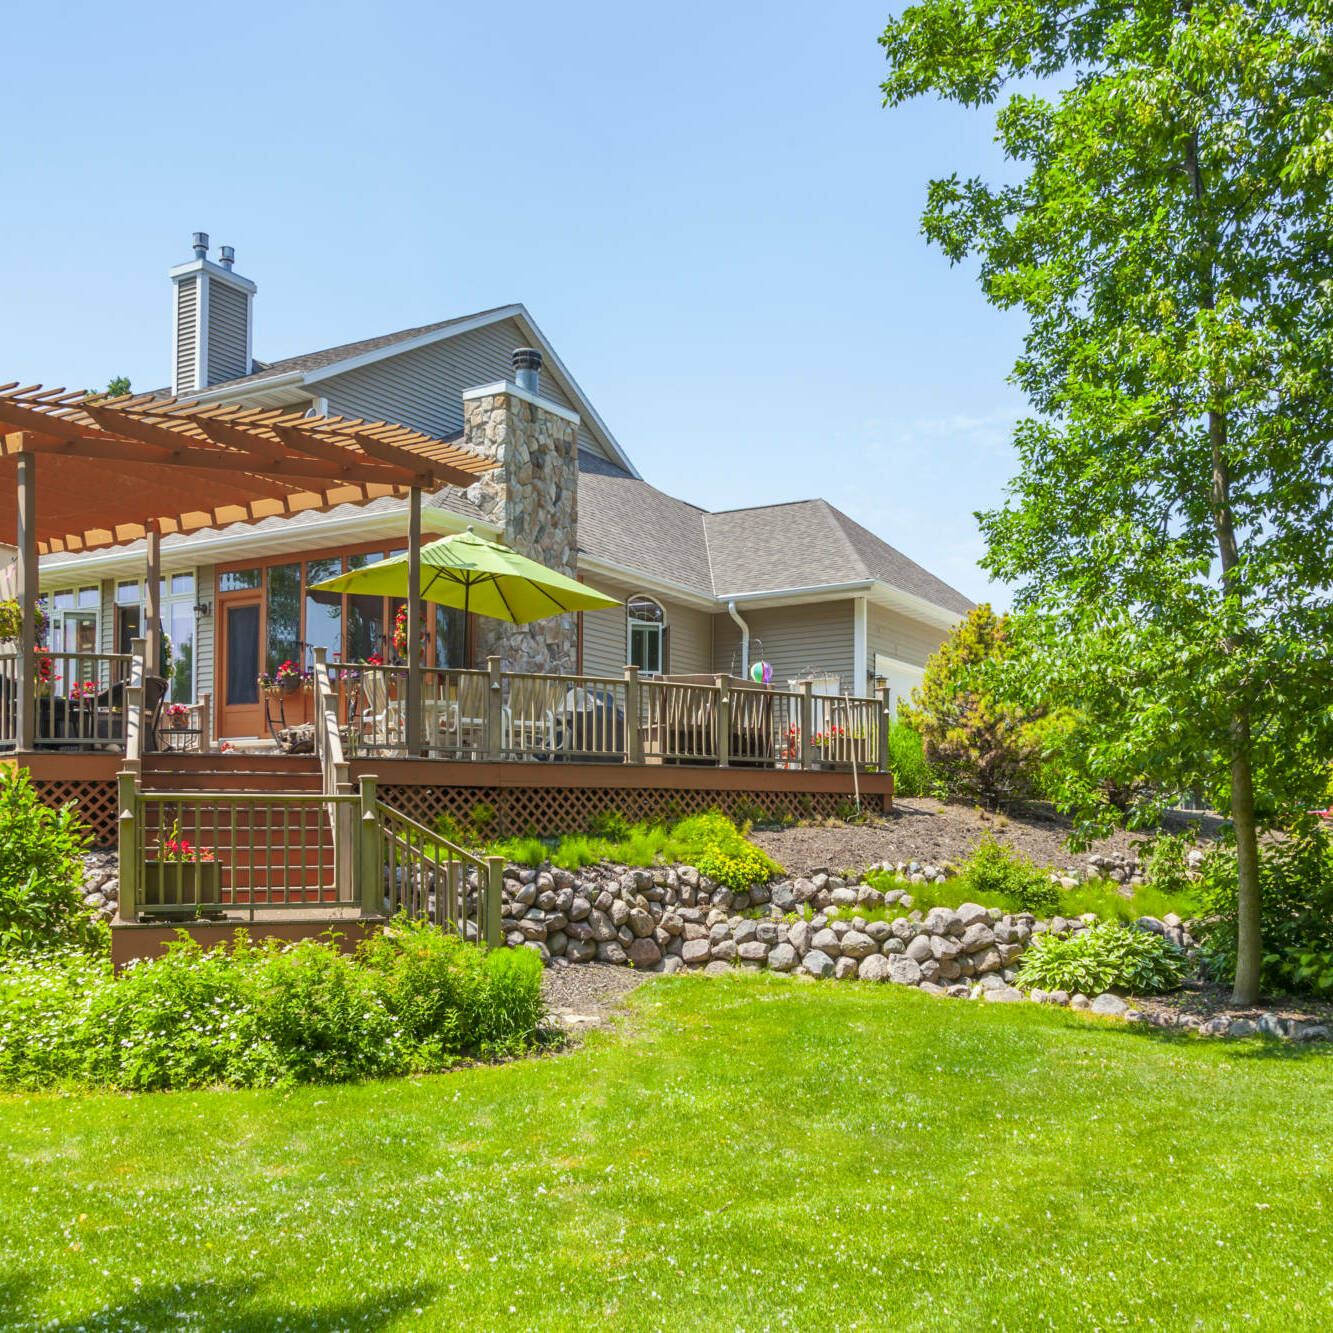 Beautiful Landscaped Yard and Deck with Pergola